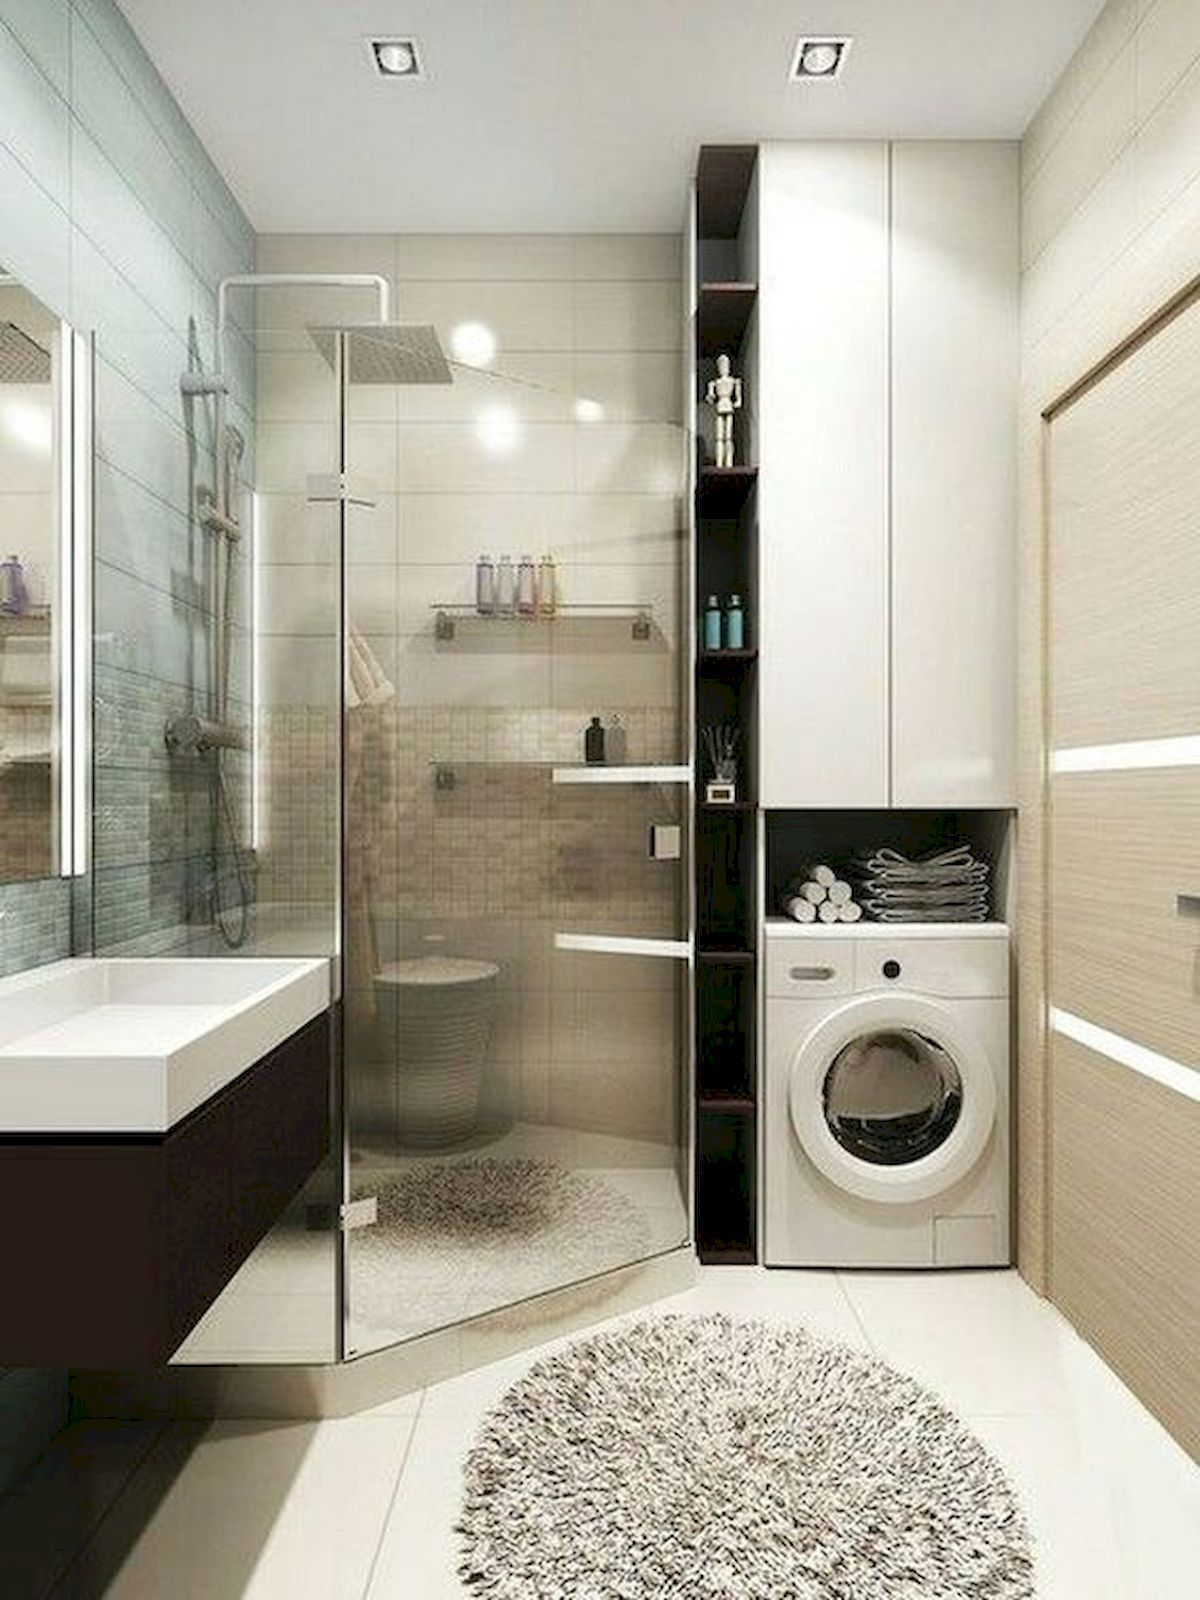 70 Suprising Small Bathroom Design Ideas And Decor With Images